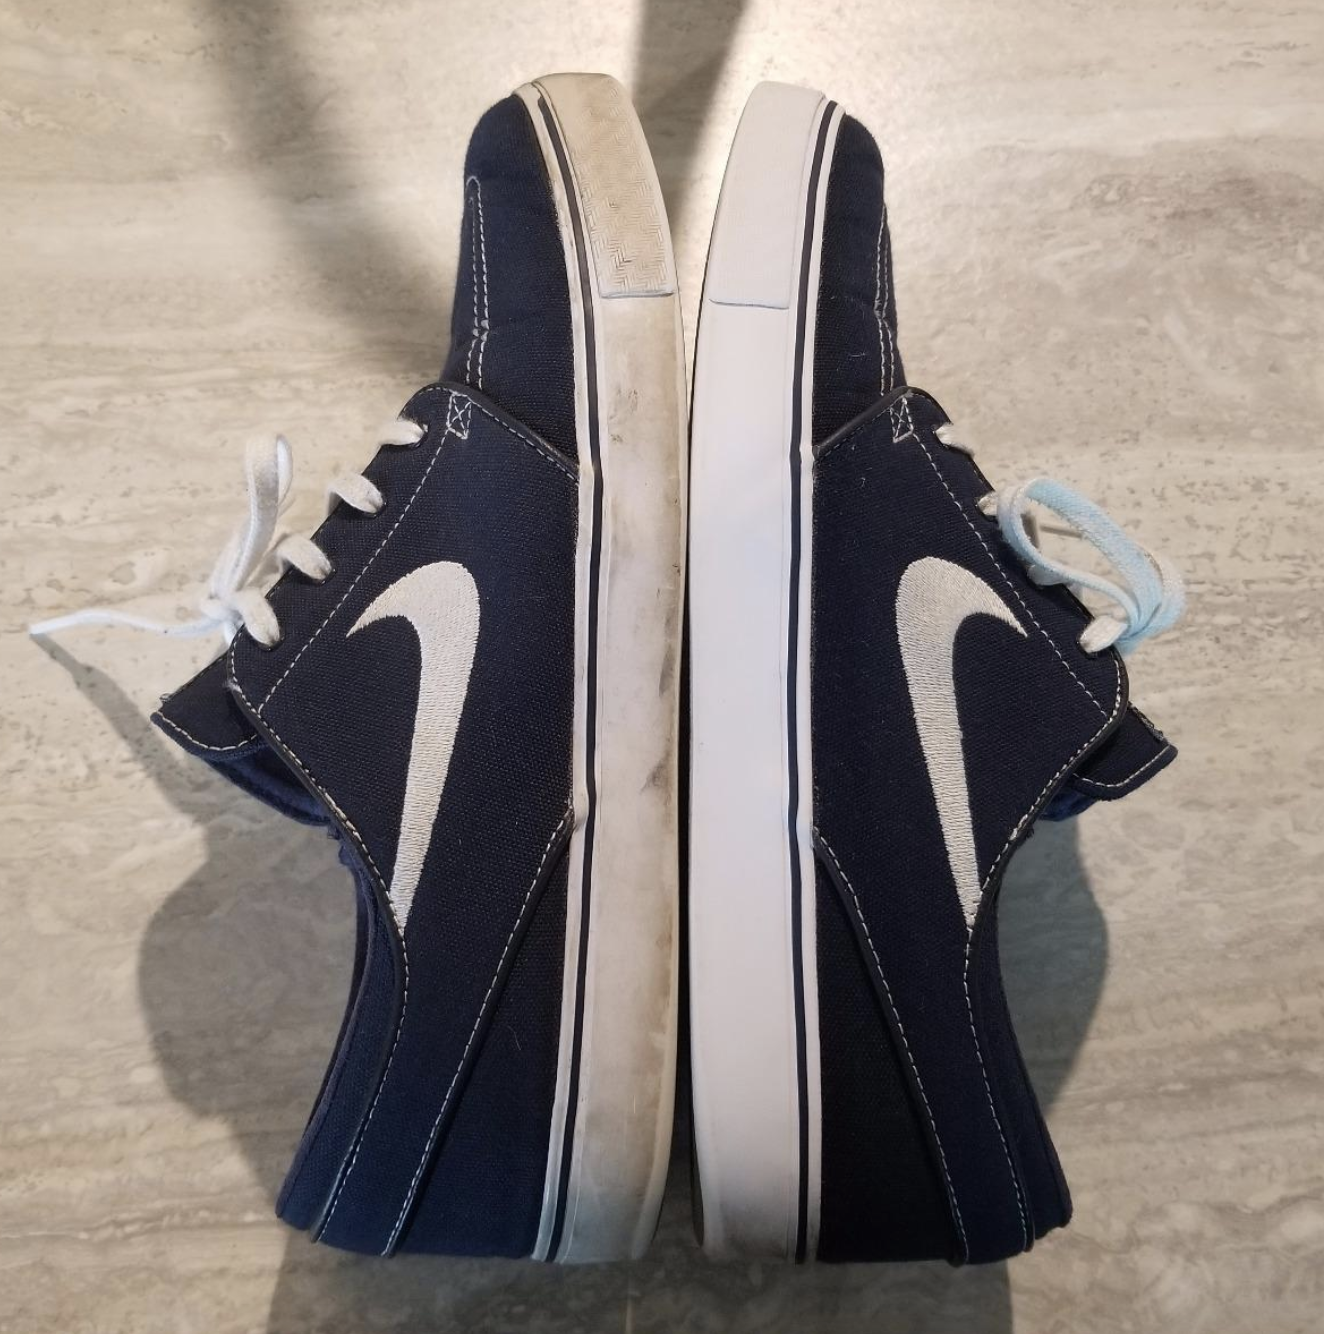 reviewer photo of Vans sneakers looking dirty on the left and clean on the right